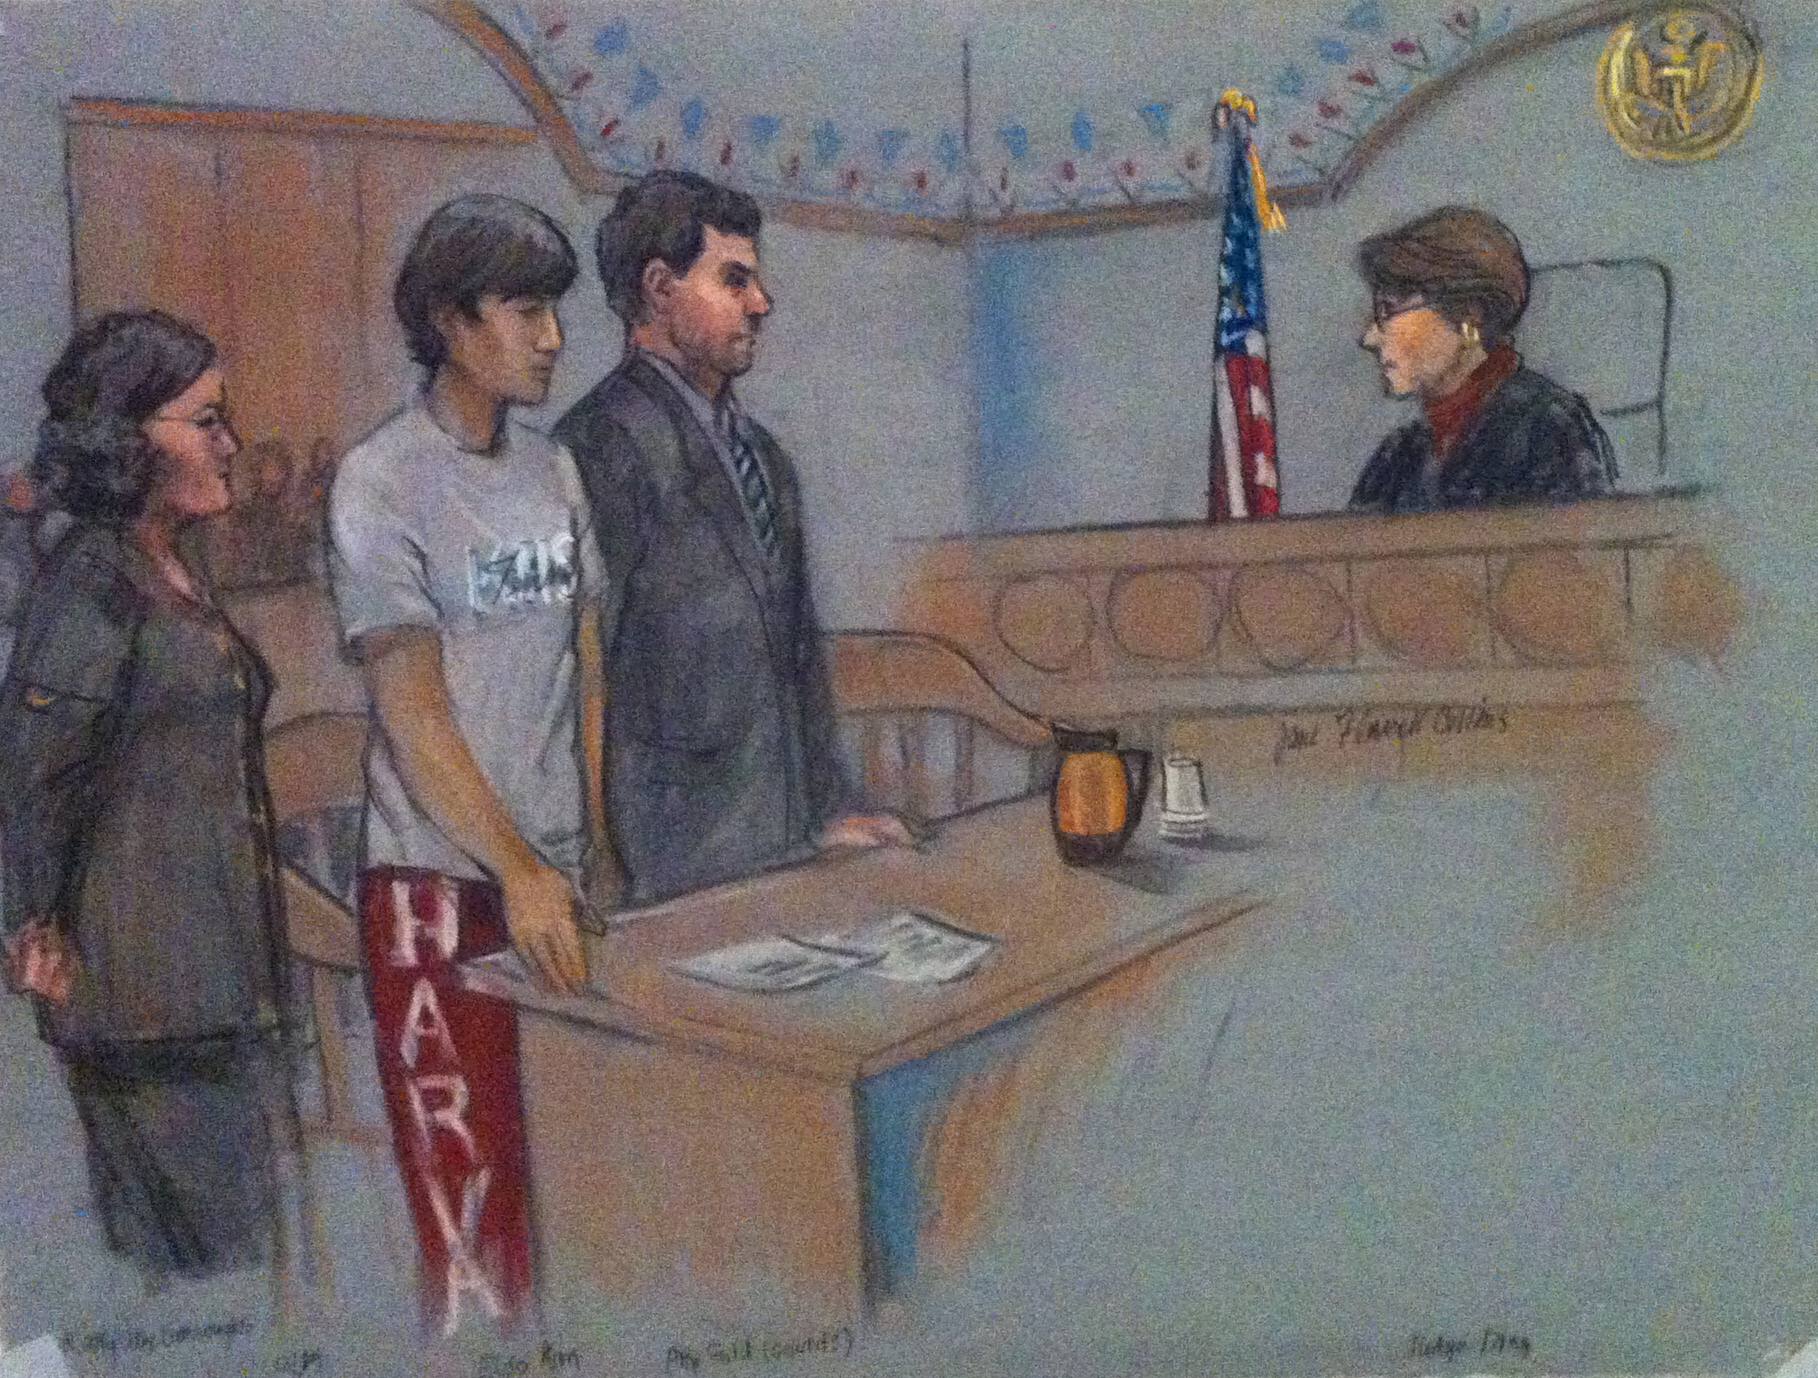 A courtroom sketch by freelance artist Jane F. Collins depicts, from left to right, private defense attorney Allison D. Burroughs, supect Eldo Kim '16, public defender Ian Gold, and U.S. Magistrate Judge Judith G. Dein during Kim's pretrial hearing Wednesday afternoon in U.S. District Court in Boston.